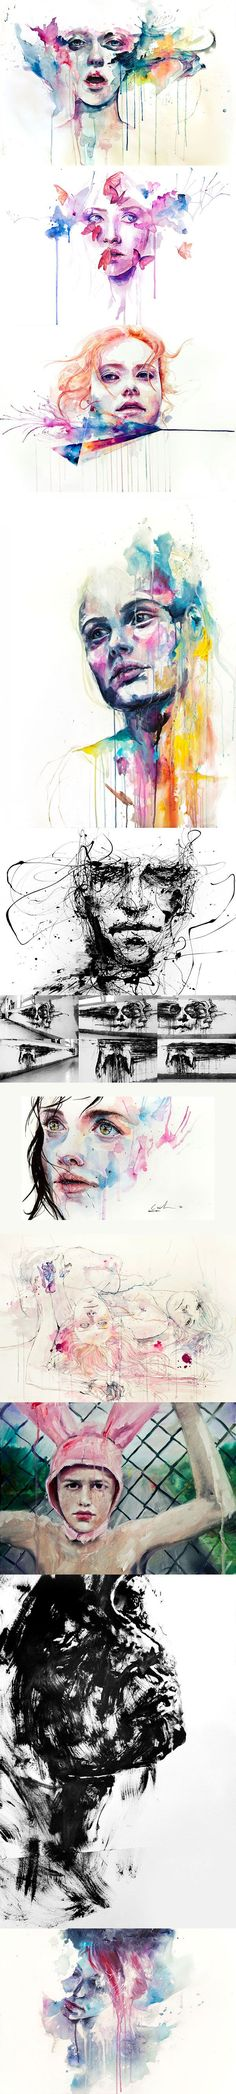 I love this artist - Agnes-cecile. I have two of her prints so far, one of which is the very top one on this pin! I think I need to start doing art again, and learn how to do watercolors!